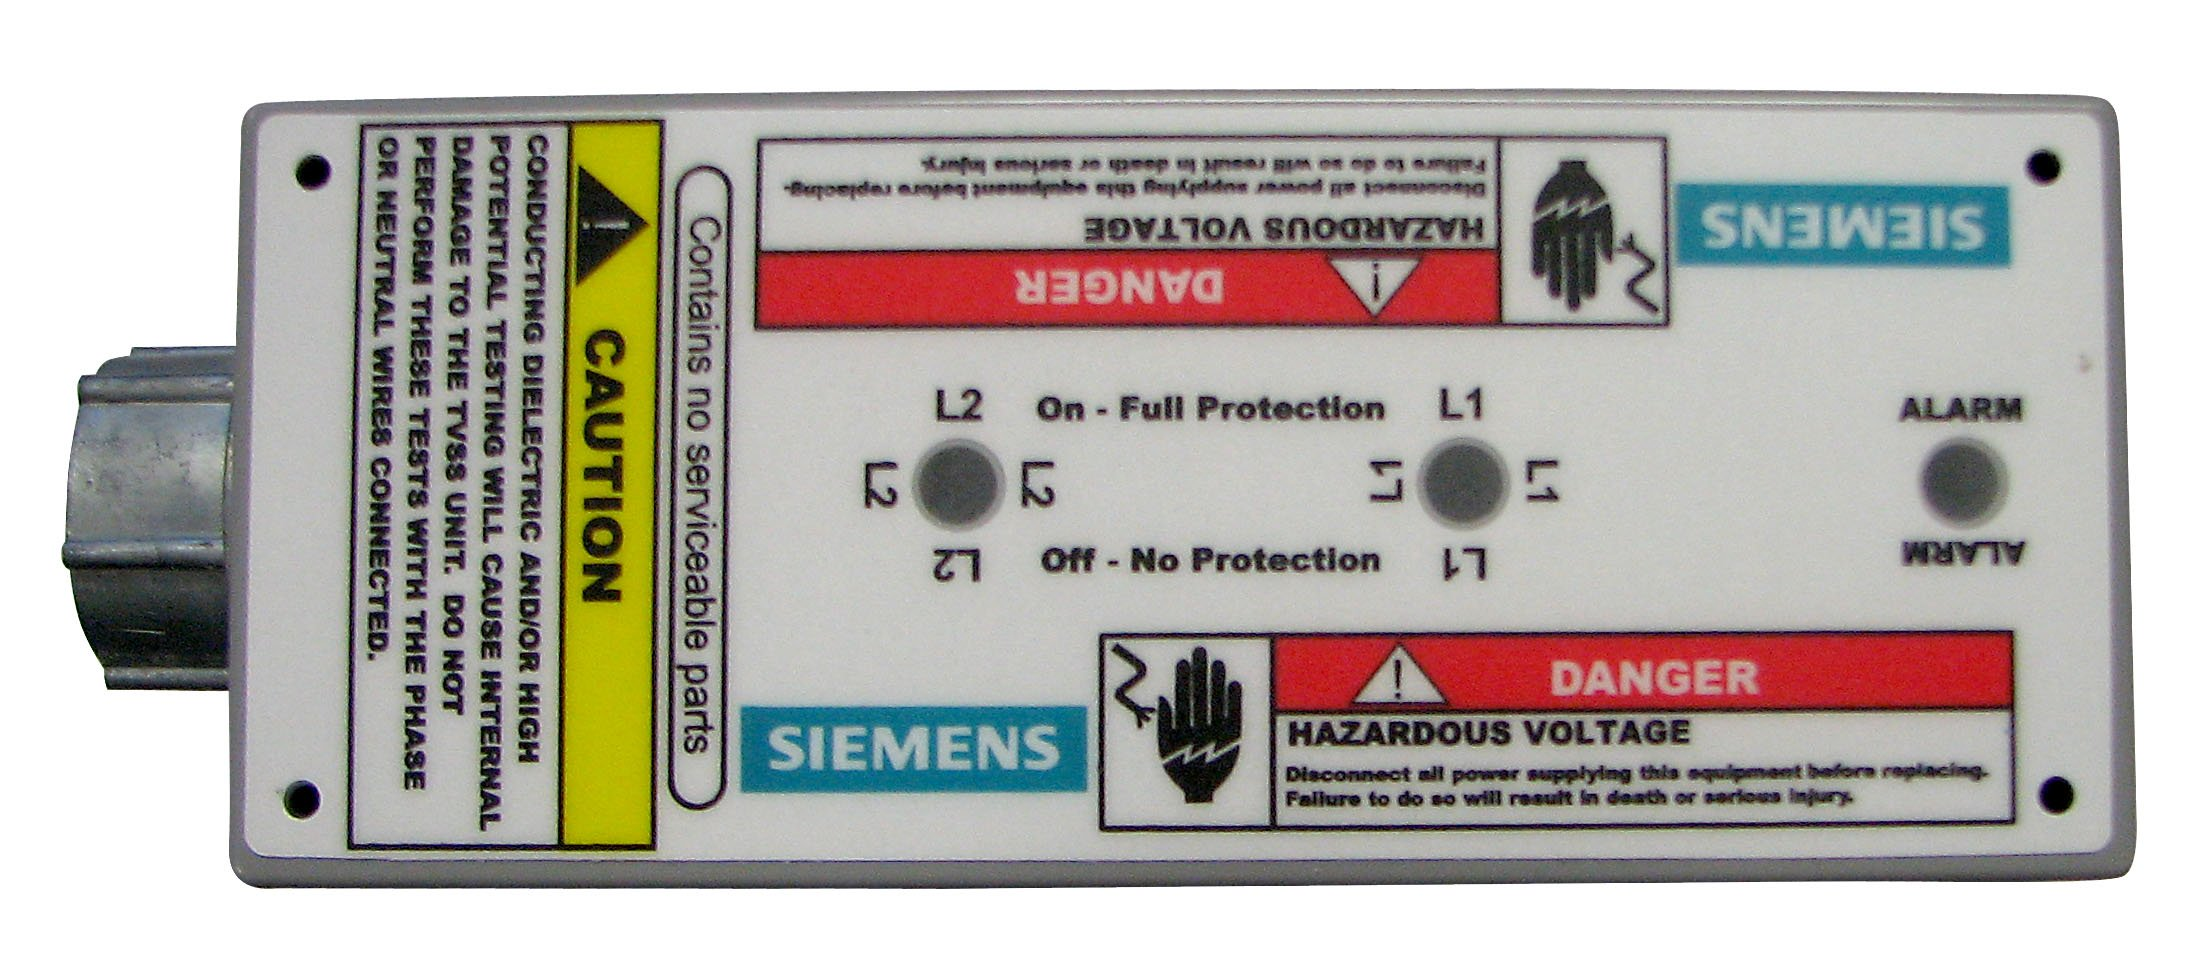 Siemens SPD4home 120/240-Volt 40kA Per Phase Whole House Surge Protective Device by Siemens